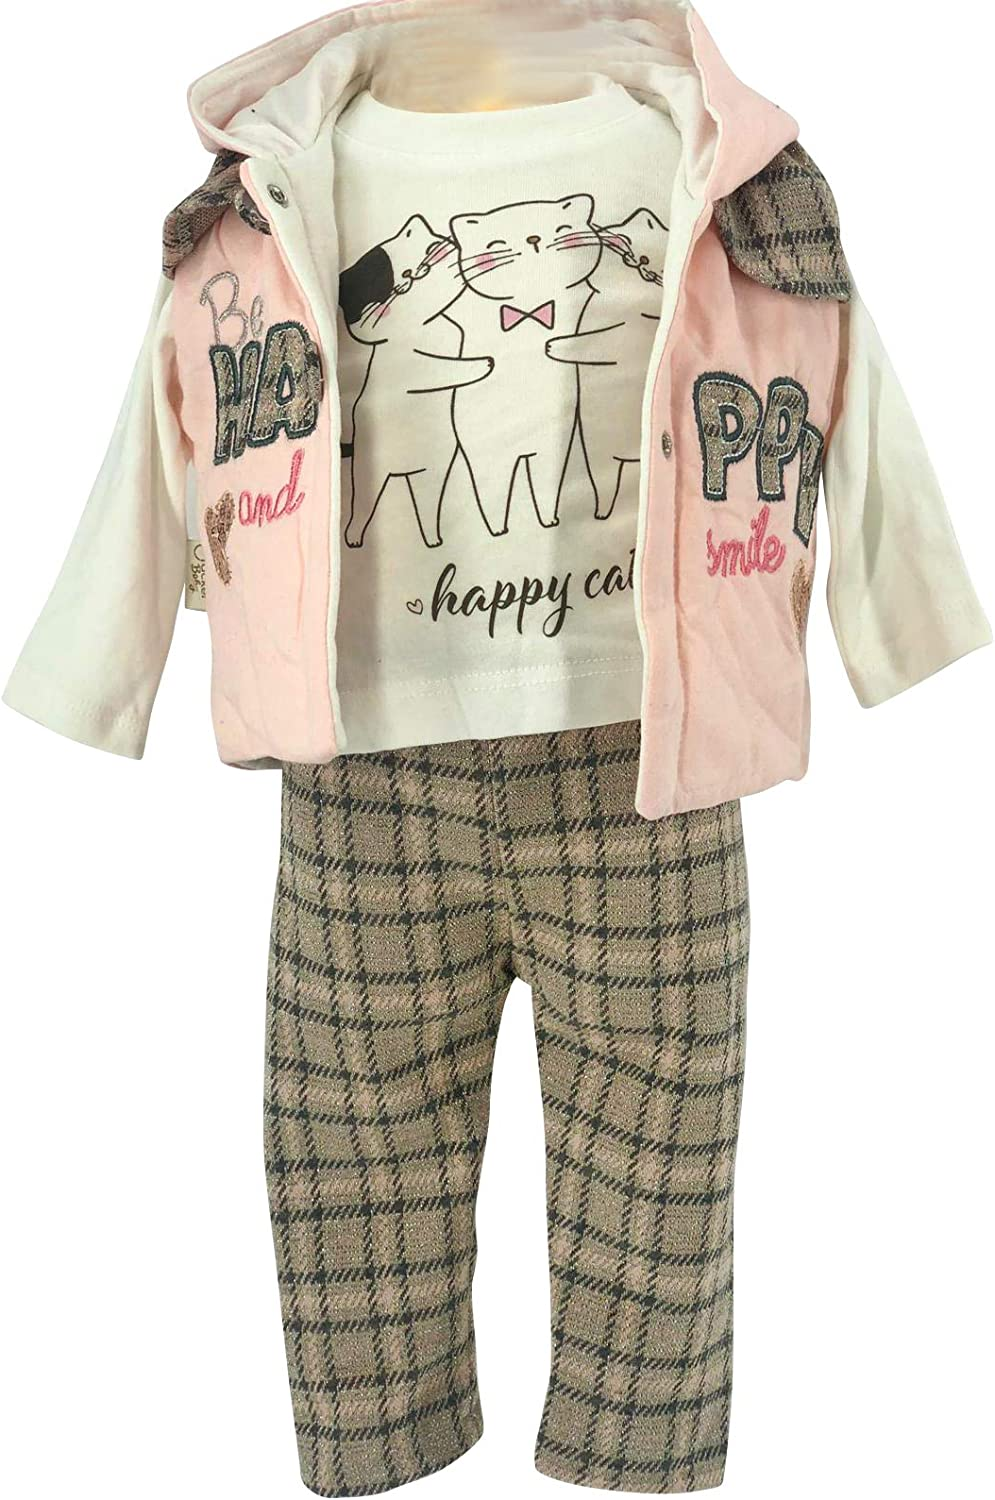 3 Piece Hooded Vest, T Shirt and Sweatpants Boys 100% Cotton 6 to 18 Months (Happy)